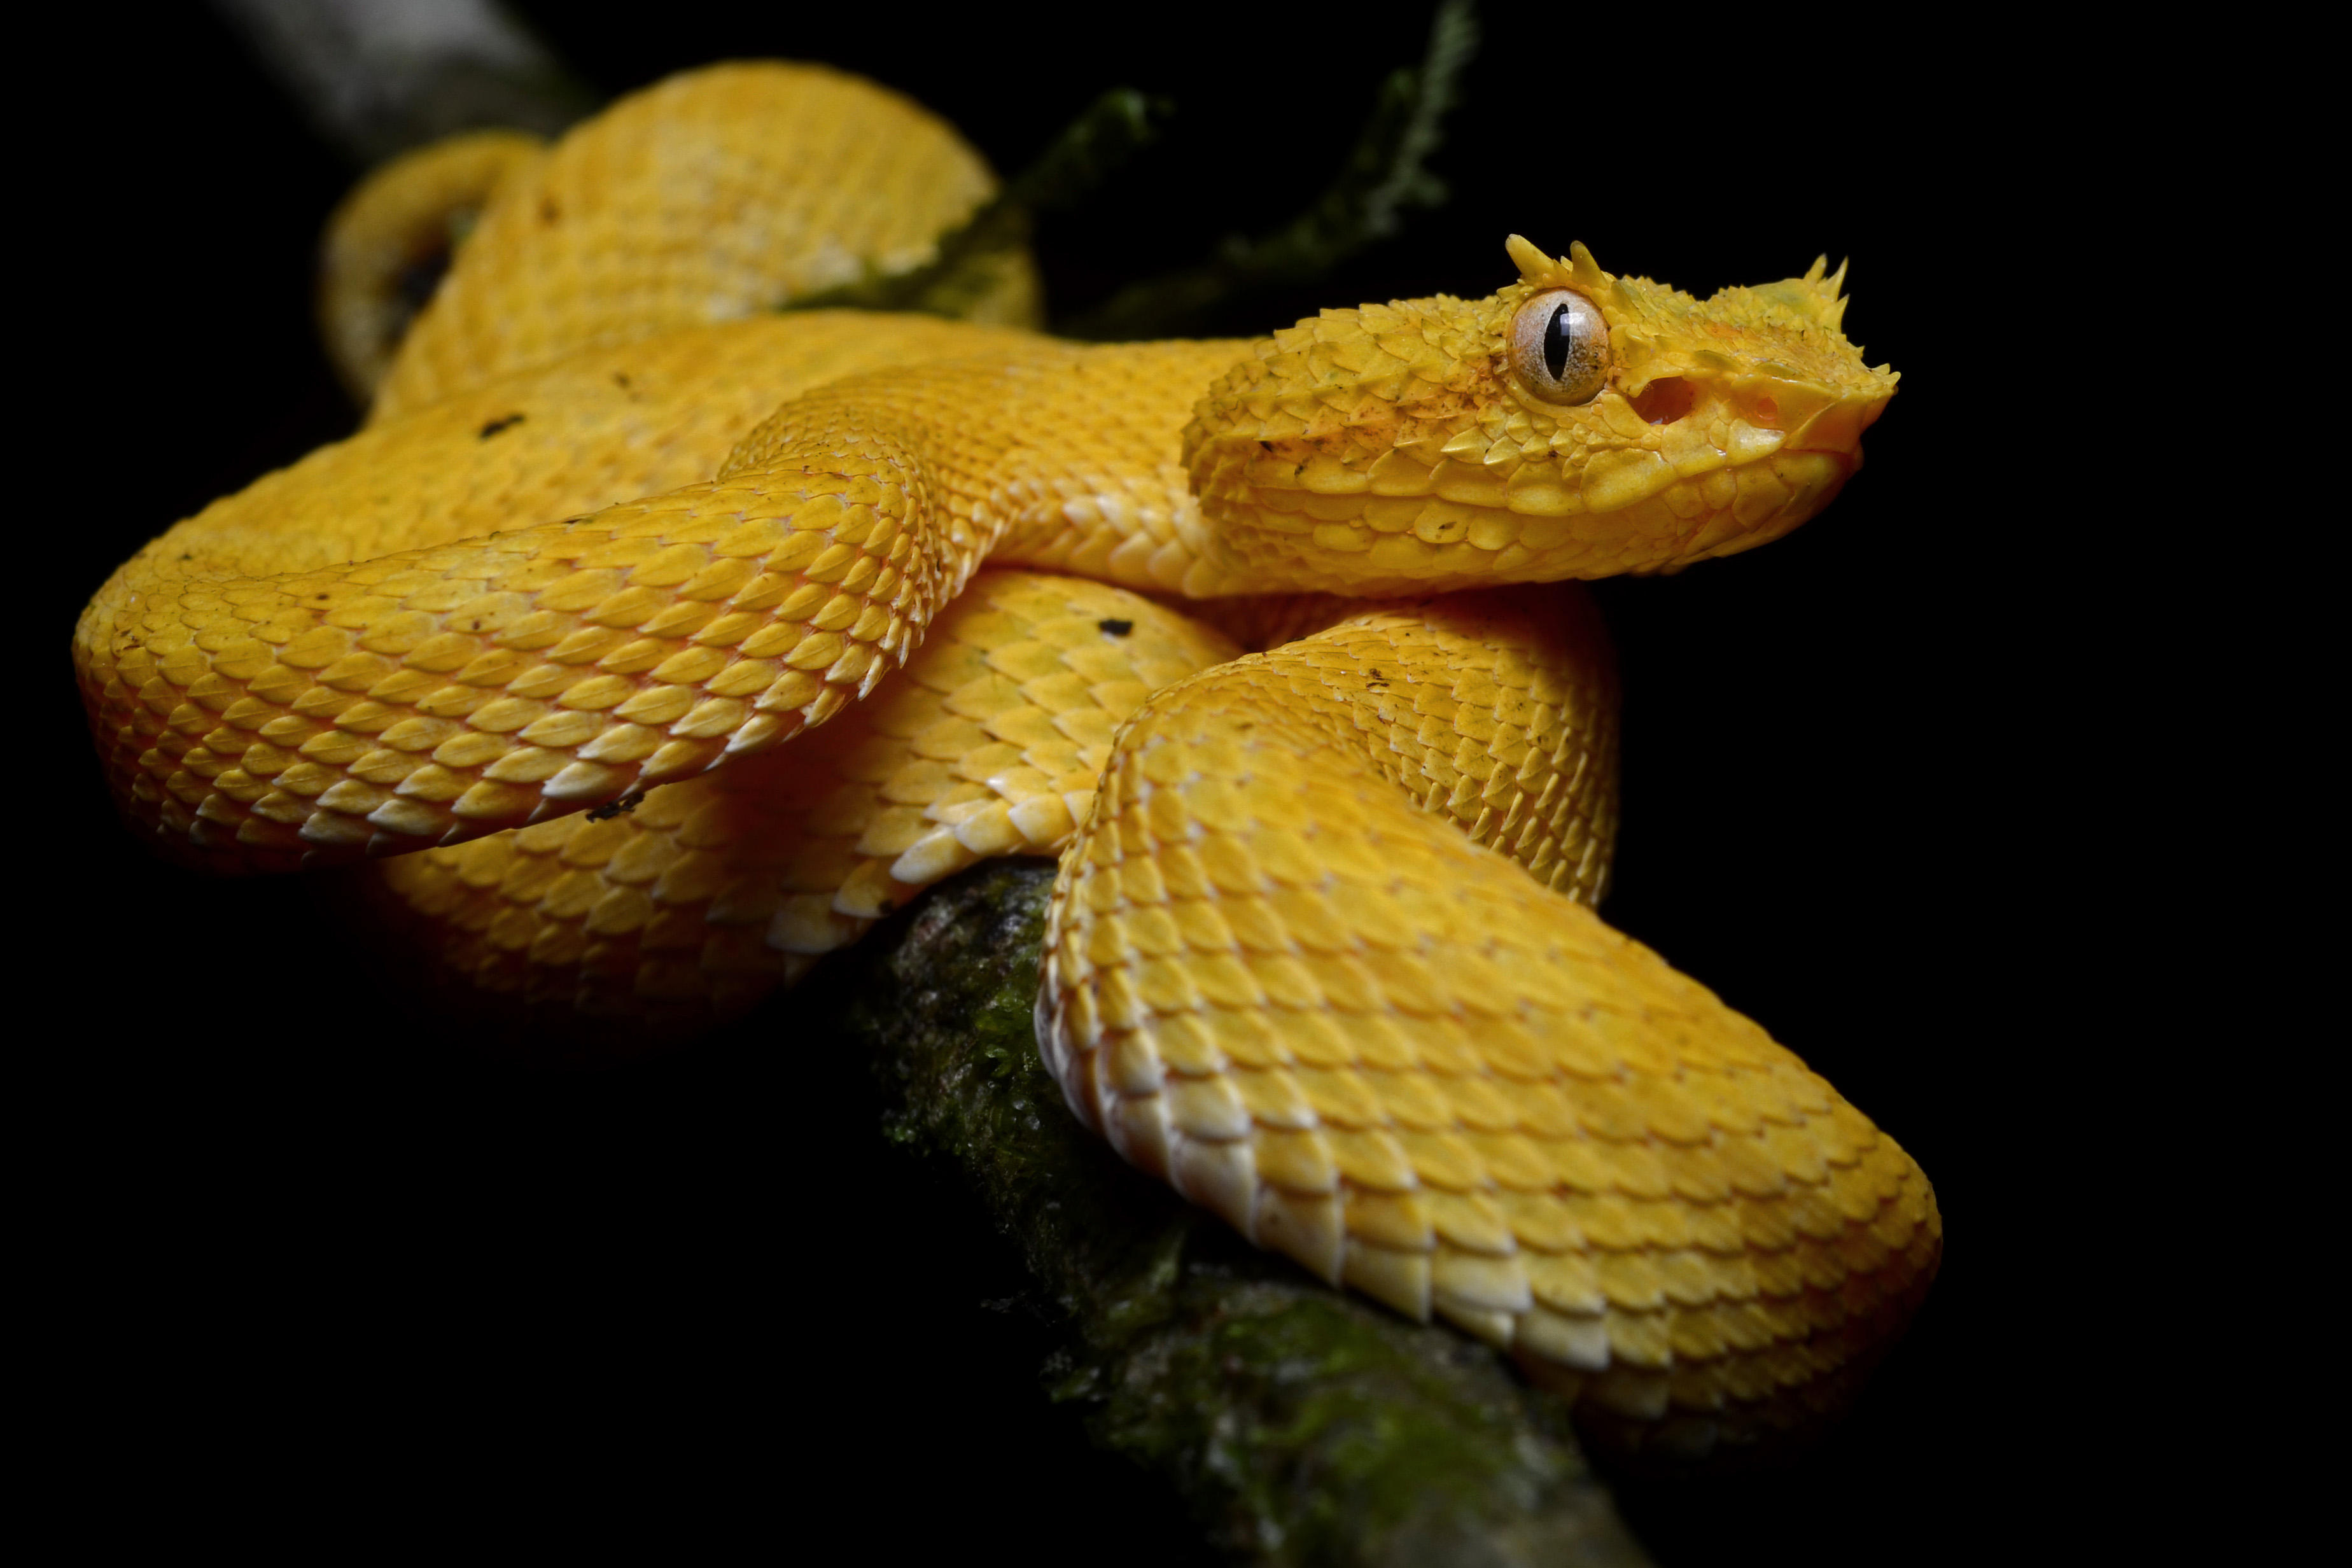 Scariest animals that only come out at night, the Eyelash Viper